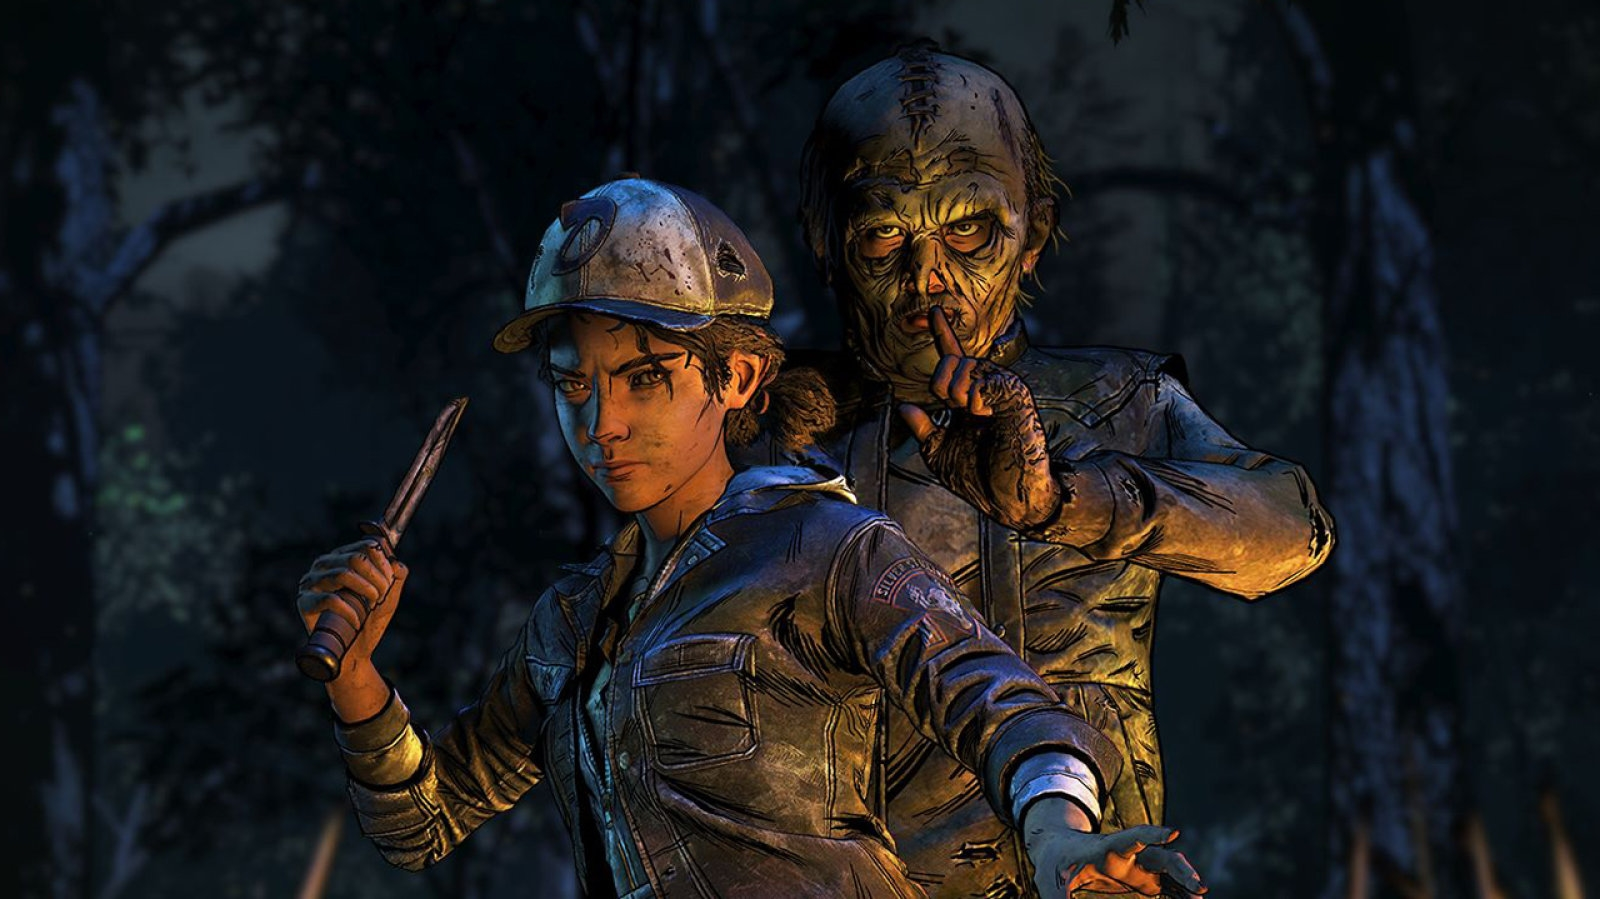 Telltale's 'The Walking Dead' conclusion is coming to the Epic Games Store | DeviceDaily.com